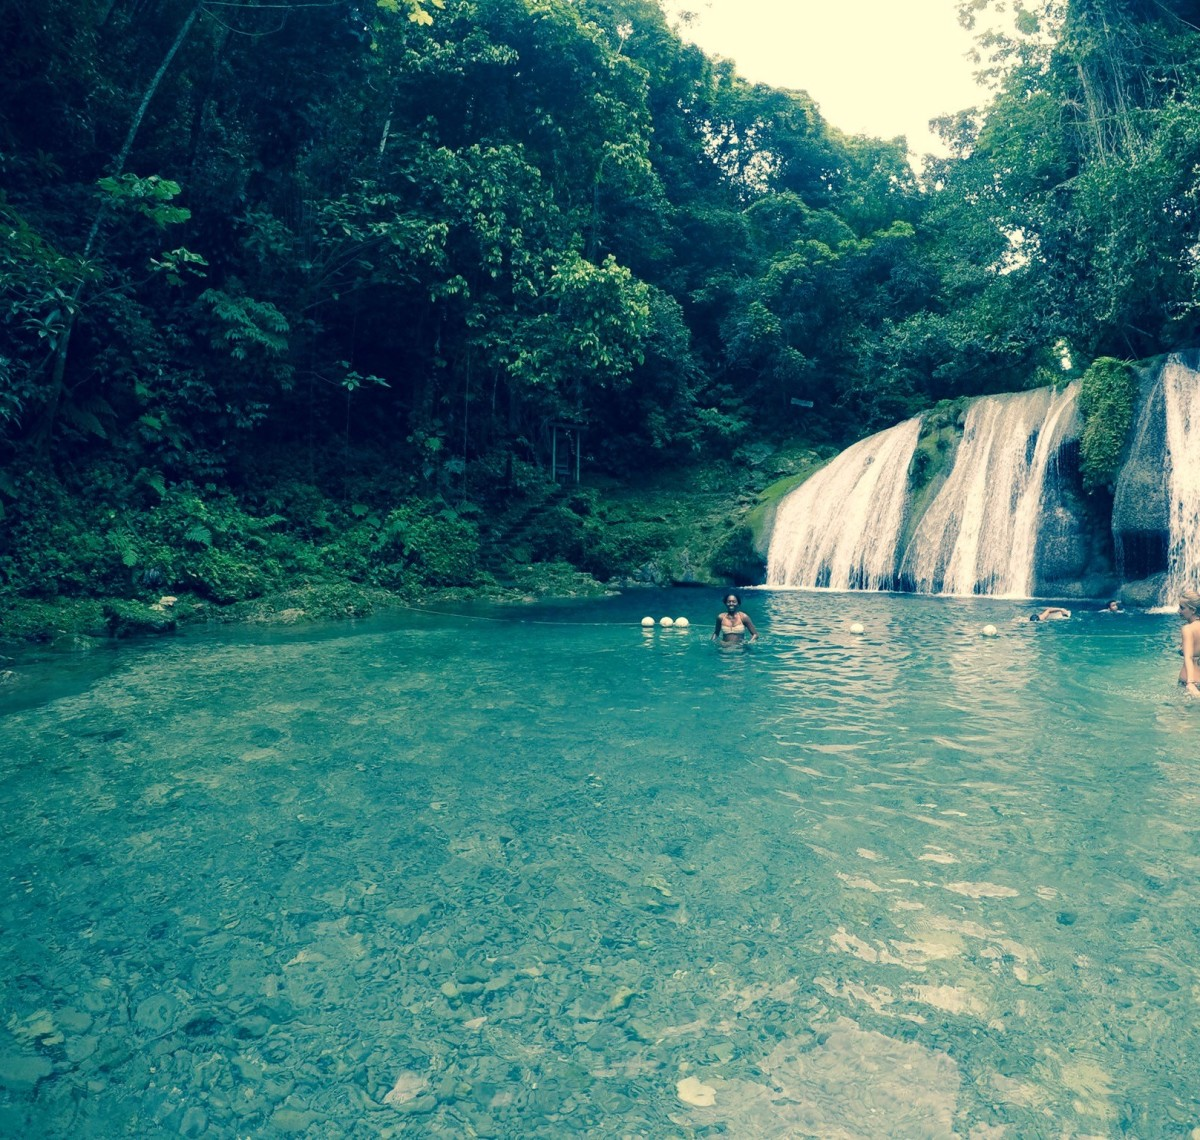 The movie Cocktail filmed in Jamaica at the Reach Falls. Today, swimmers can enjoy nature at the quiet waterfall/